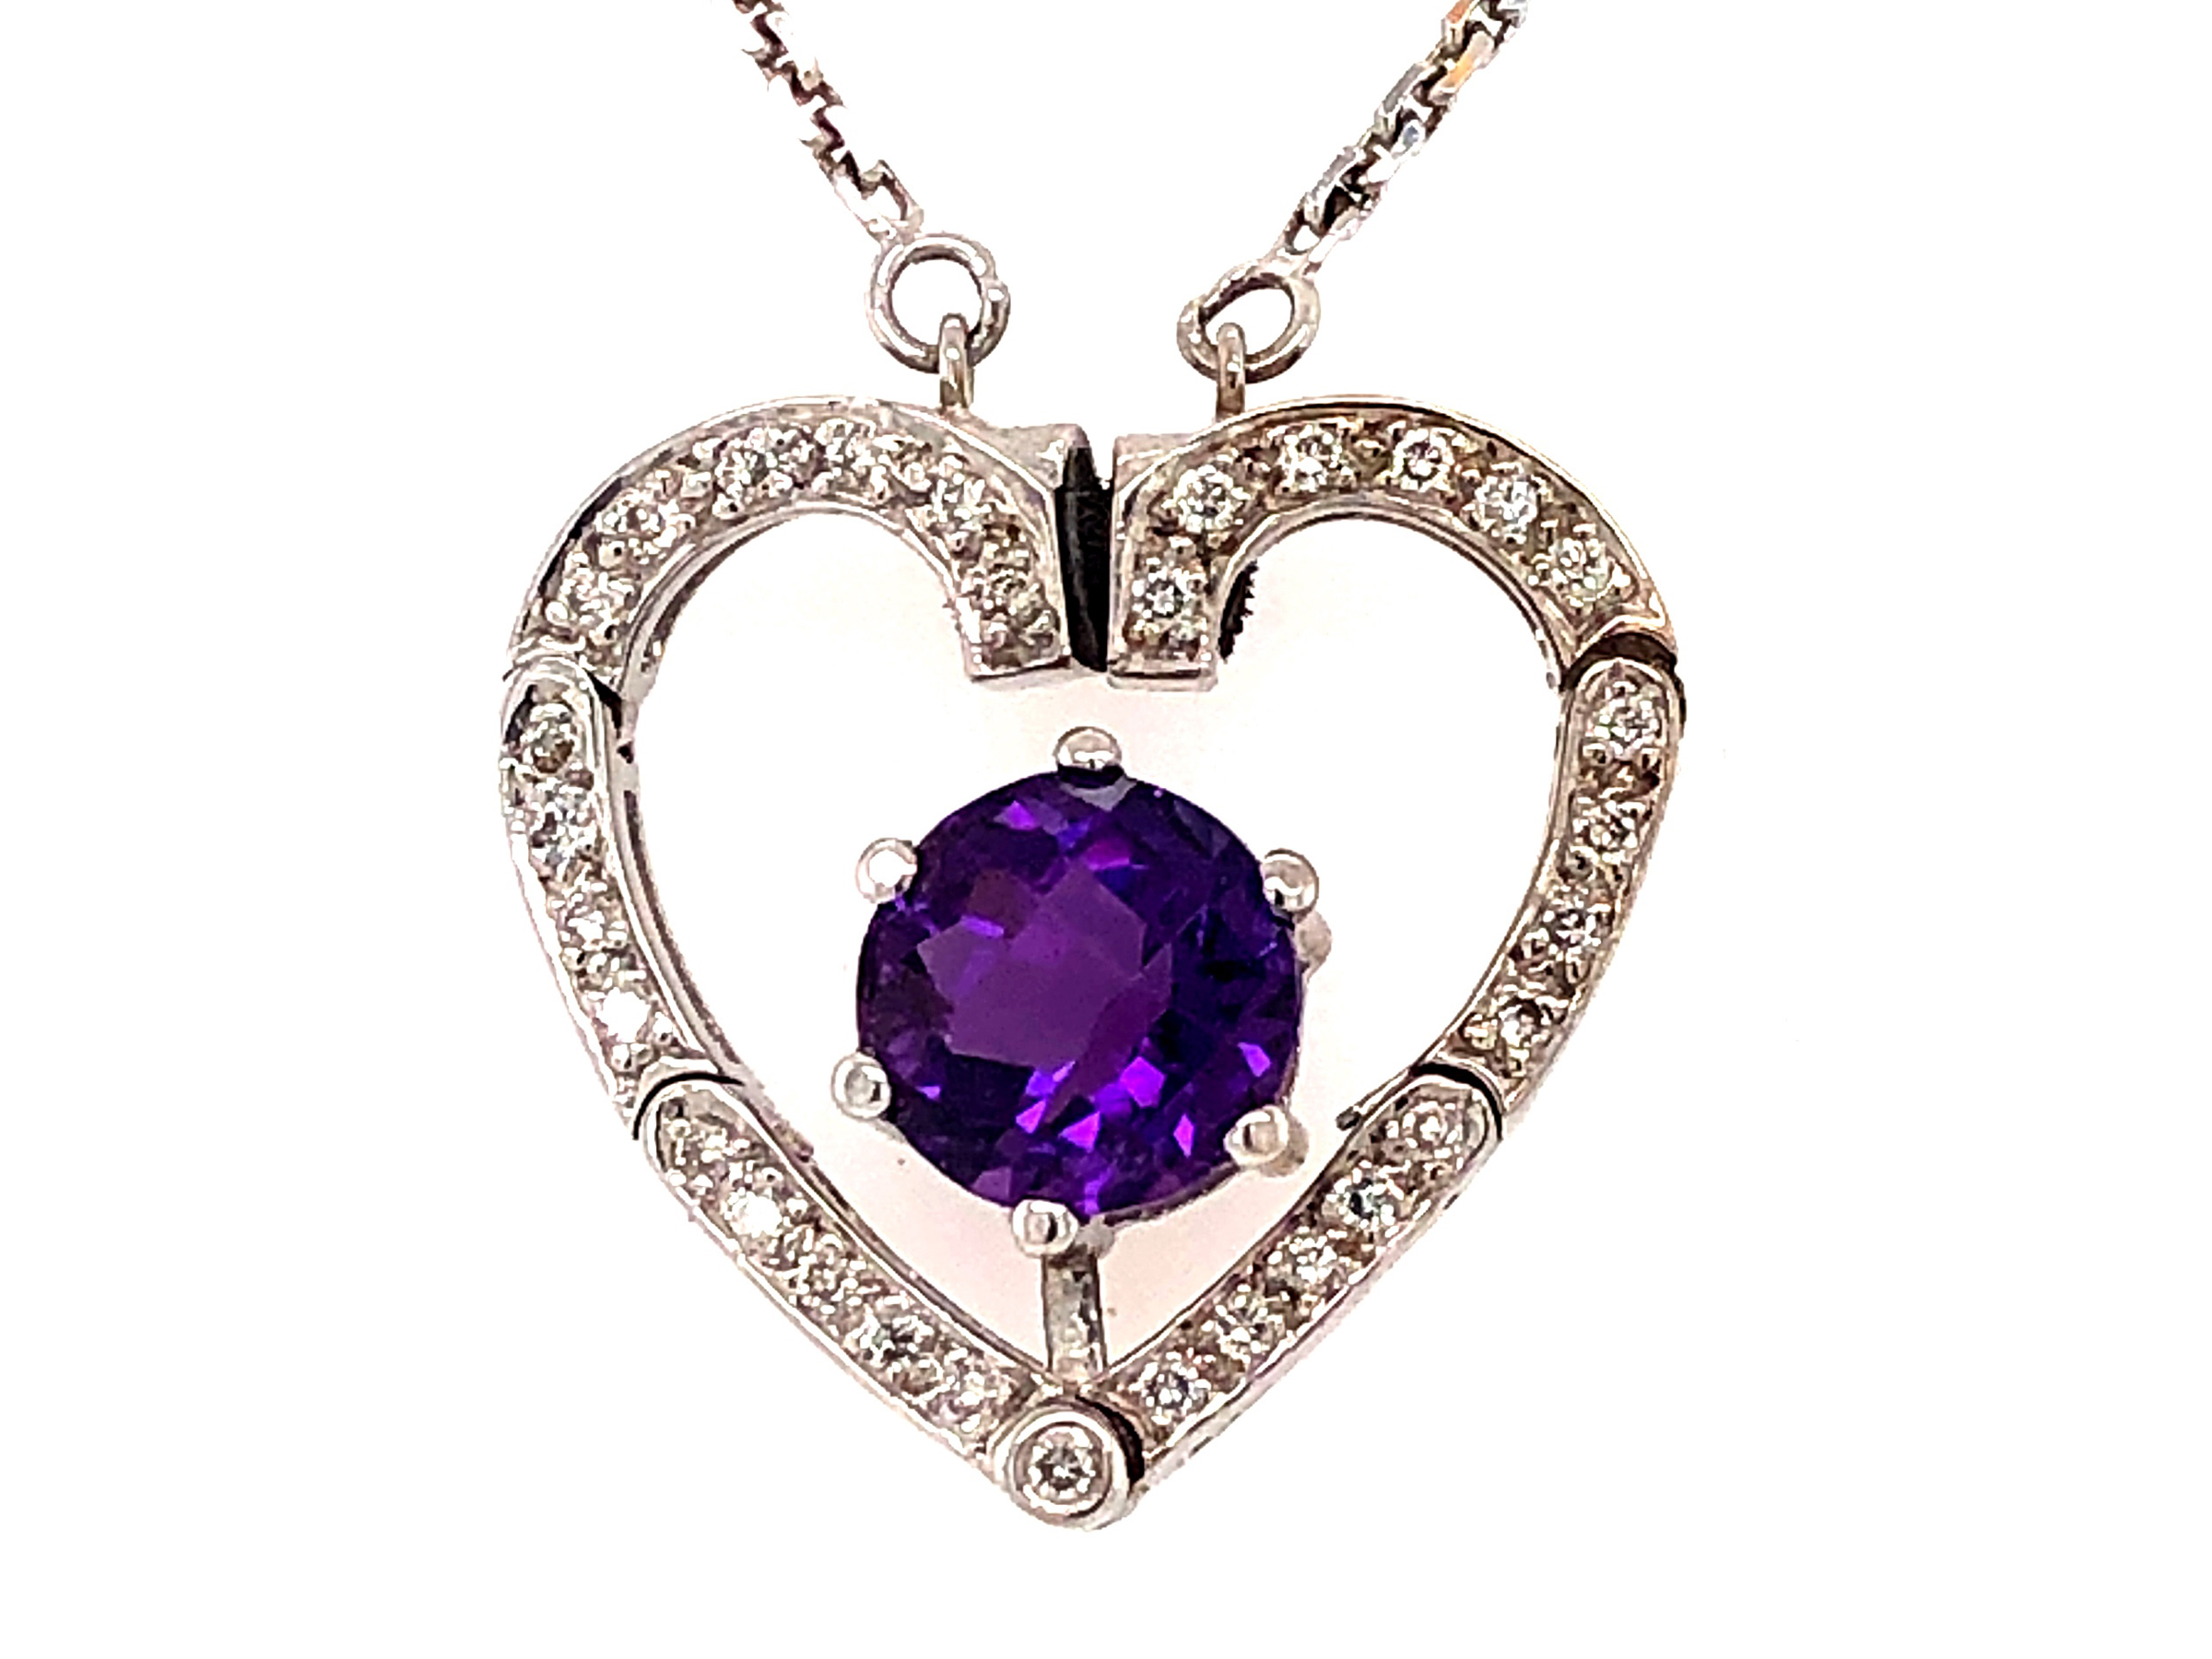 Amethyst & Diamond Heart Convertible Necklace